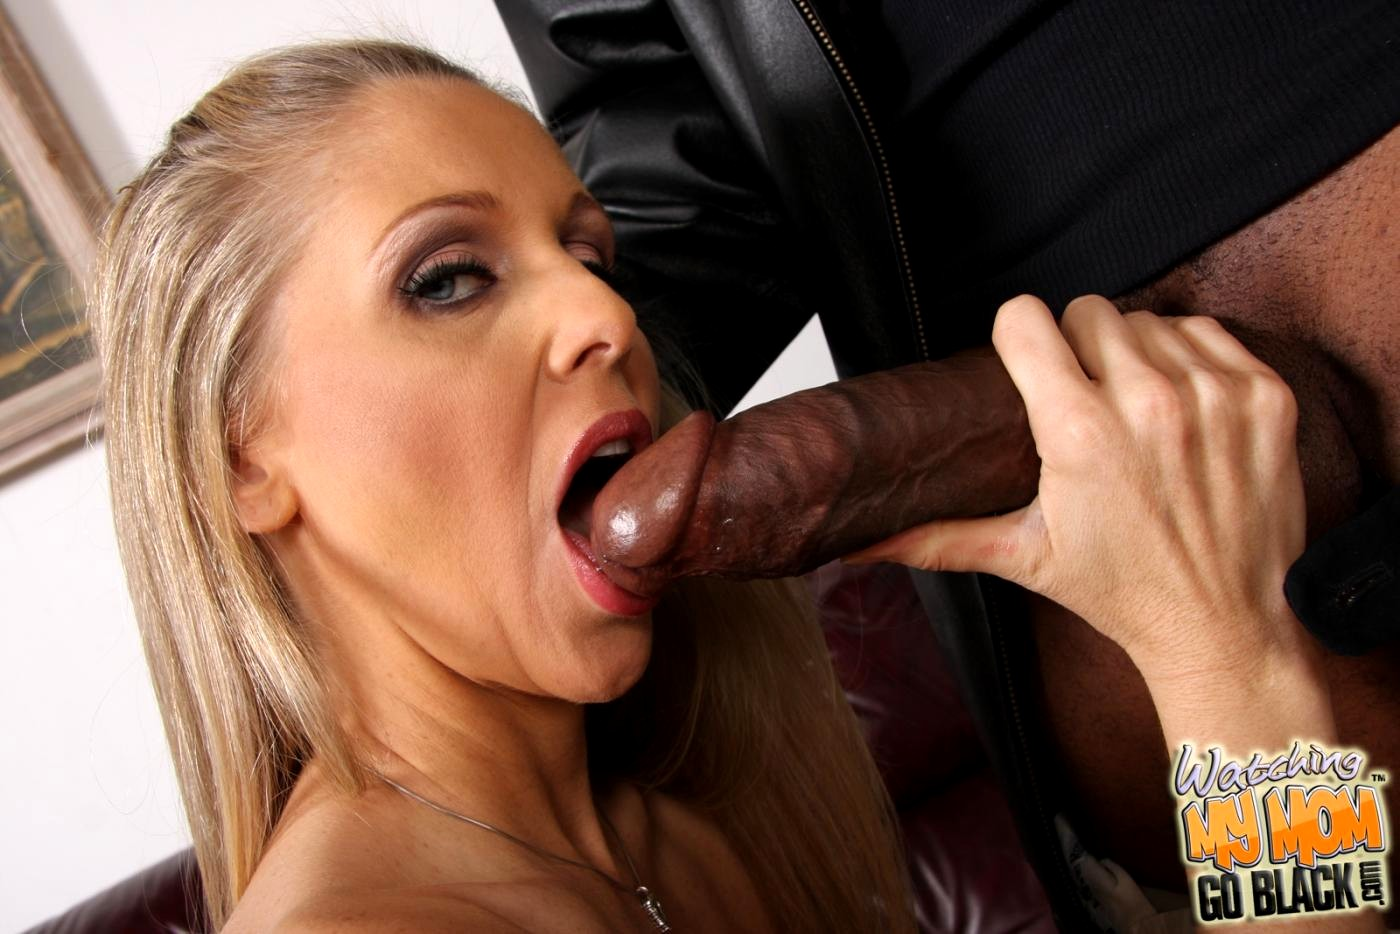 blonde-cock-milf-sucker